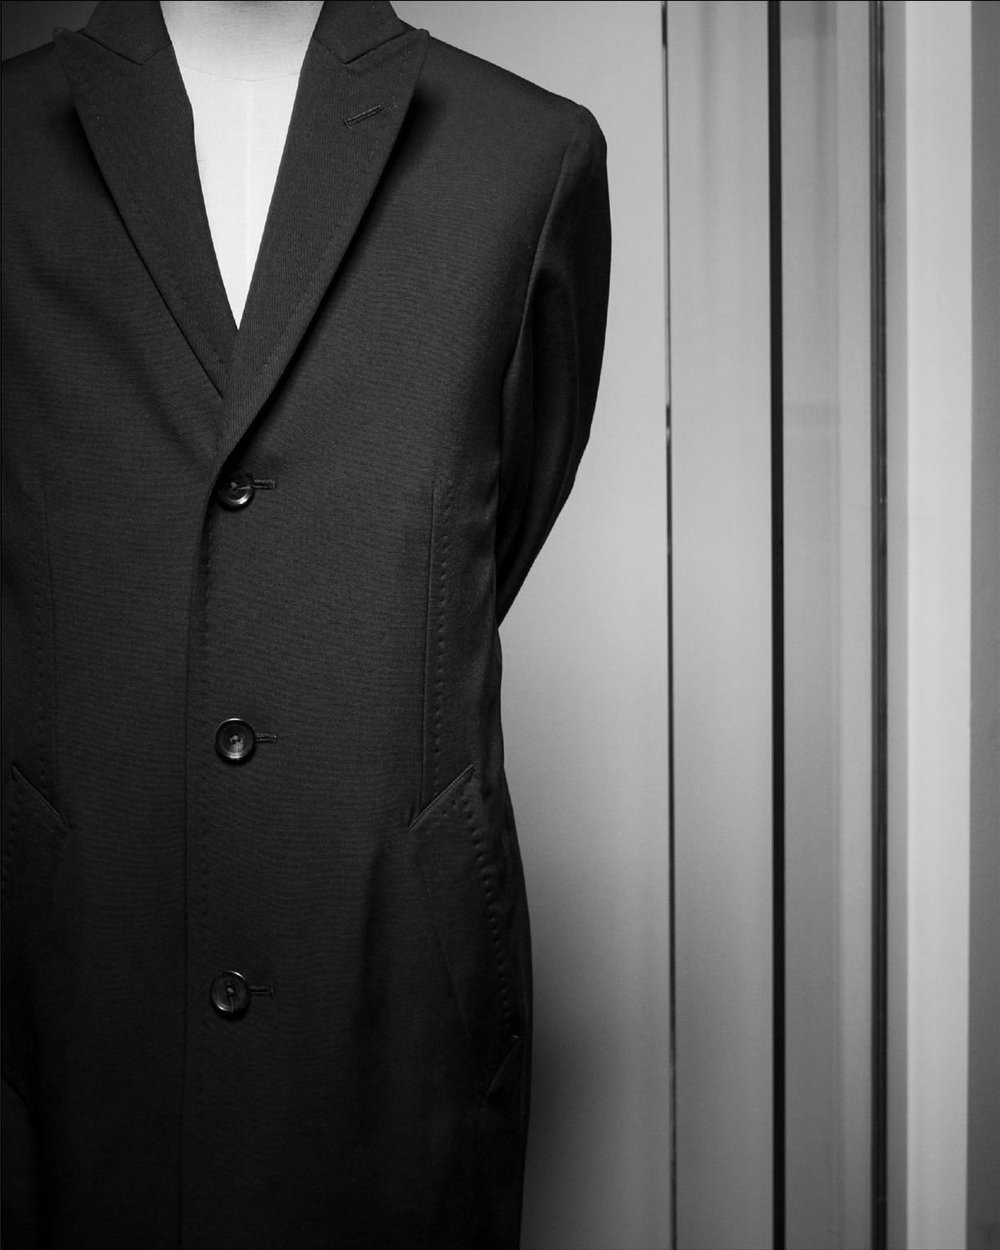 Overcoats - We offer a full range of overcoat and raincoat fabrics. Specializing in unstructured, soft makes with Italian milled wools and cottons. Styles cover both single breasted and double breasted all custom made for the individual. Pricing starts at $850 with all options included. Please allow 4-6 weeks for delivery.